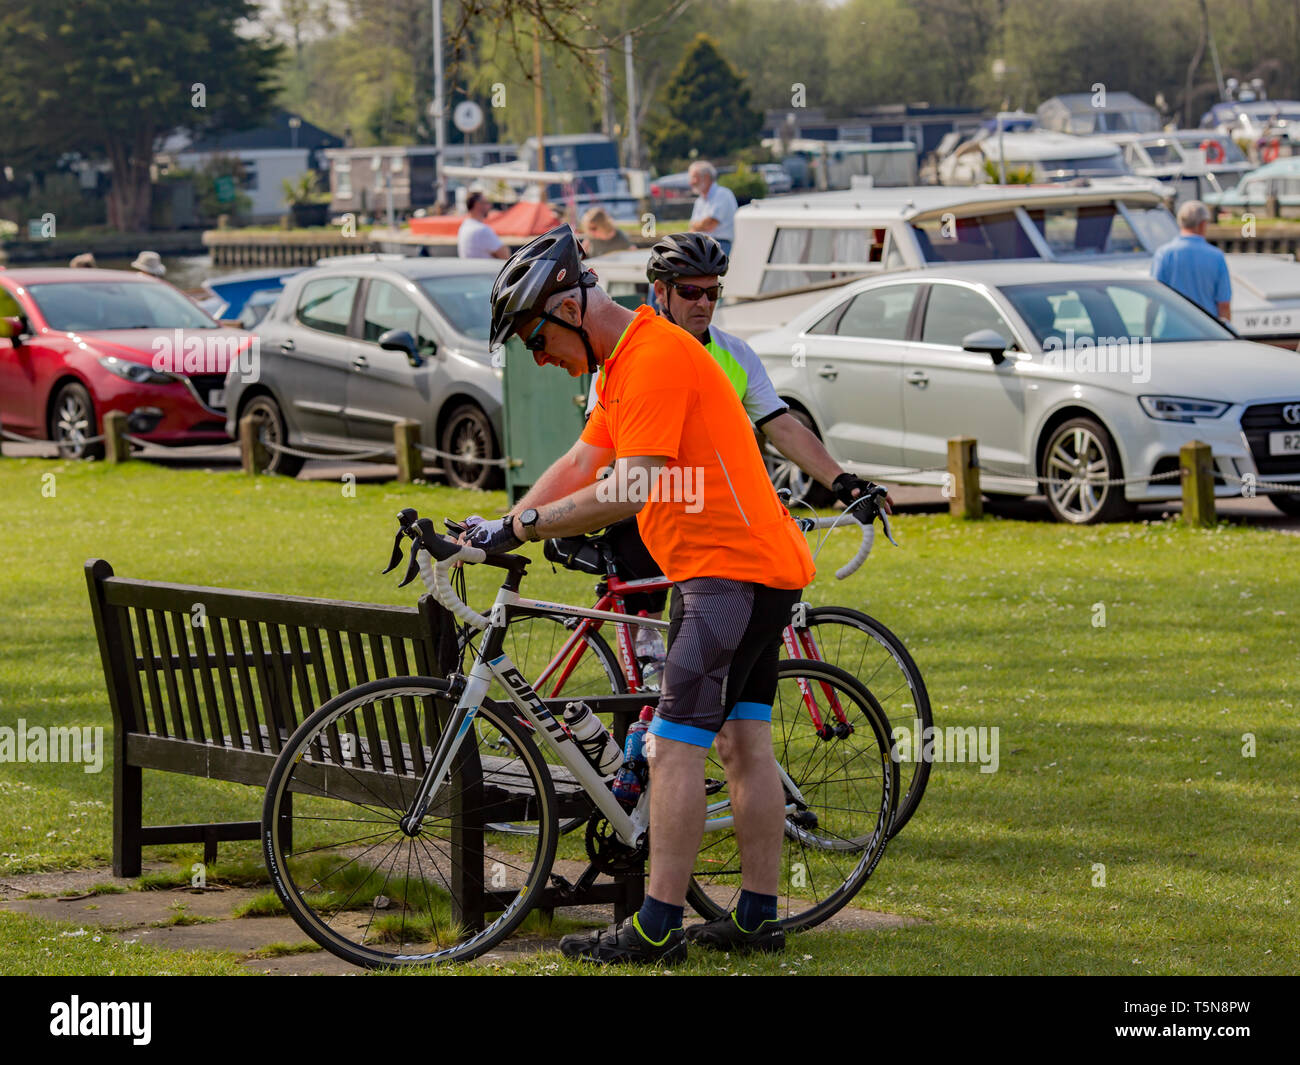 Two male cyclists getting their road bicycles ready to carry on their journey after spending a few minutes resting on a wooden bench in a public park  Stock Photo